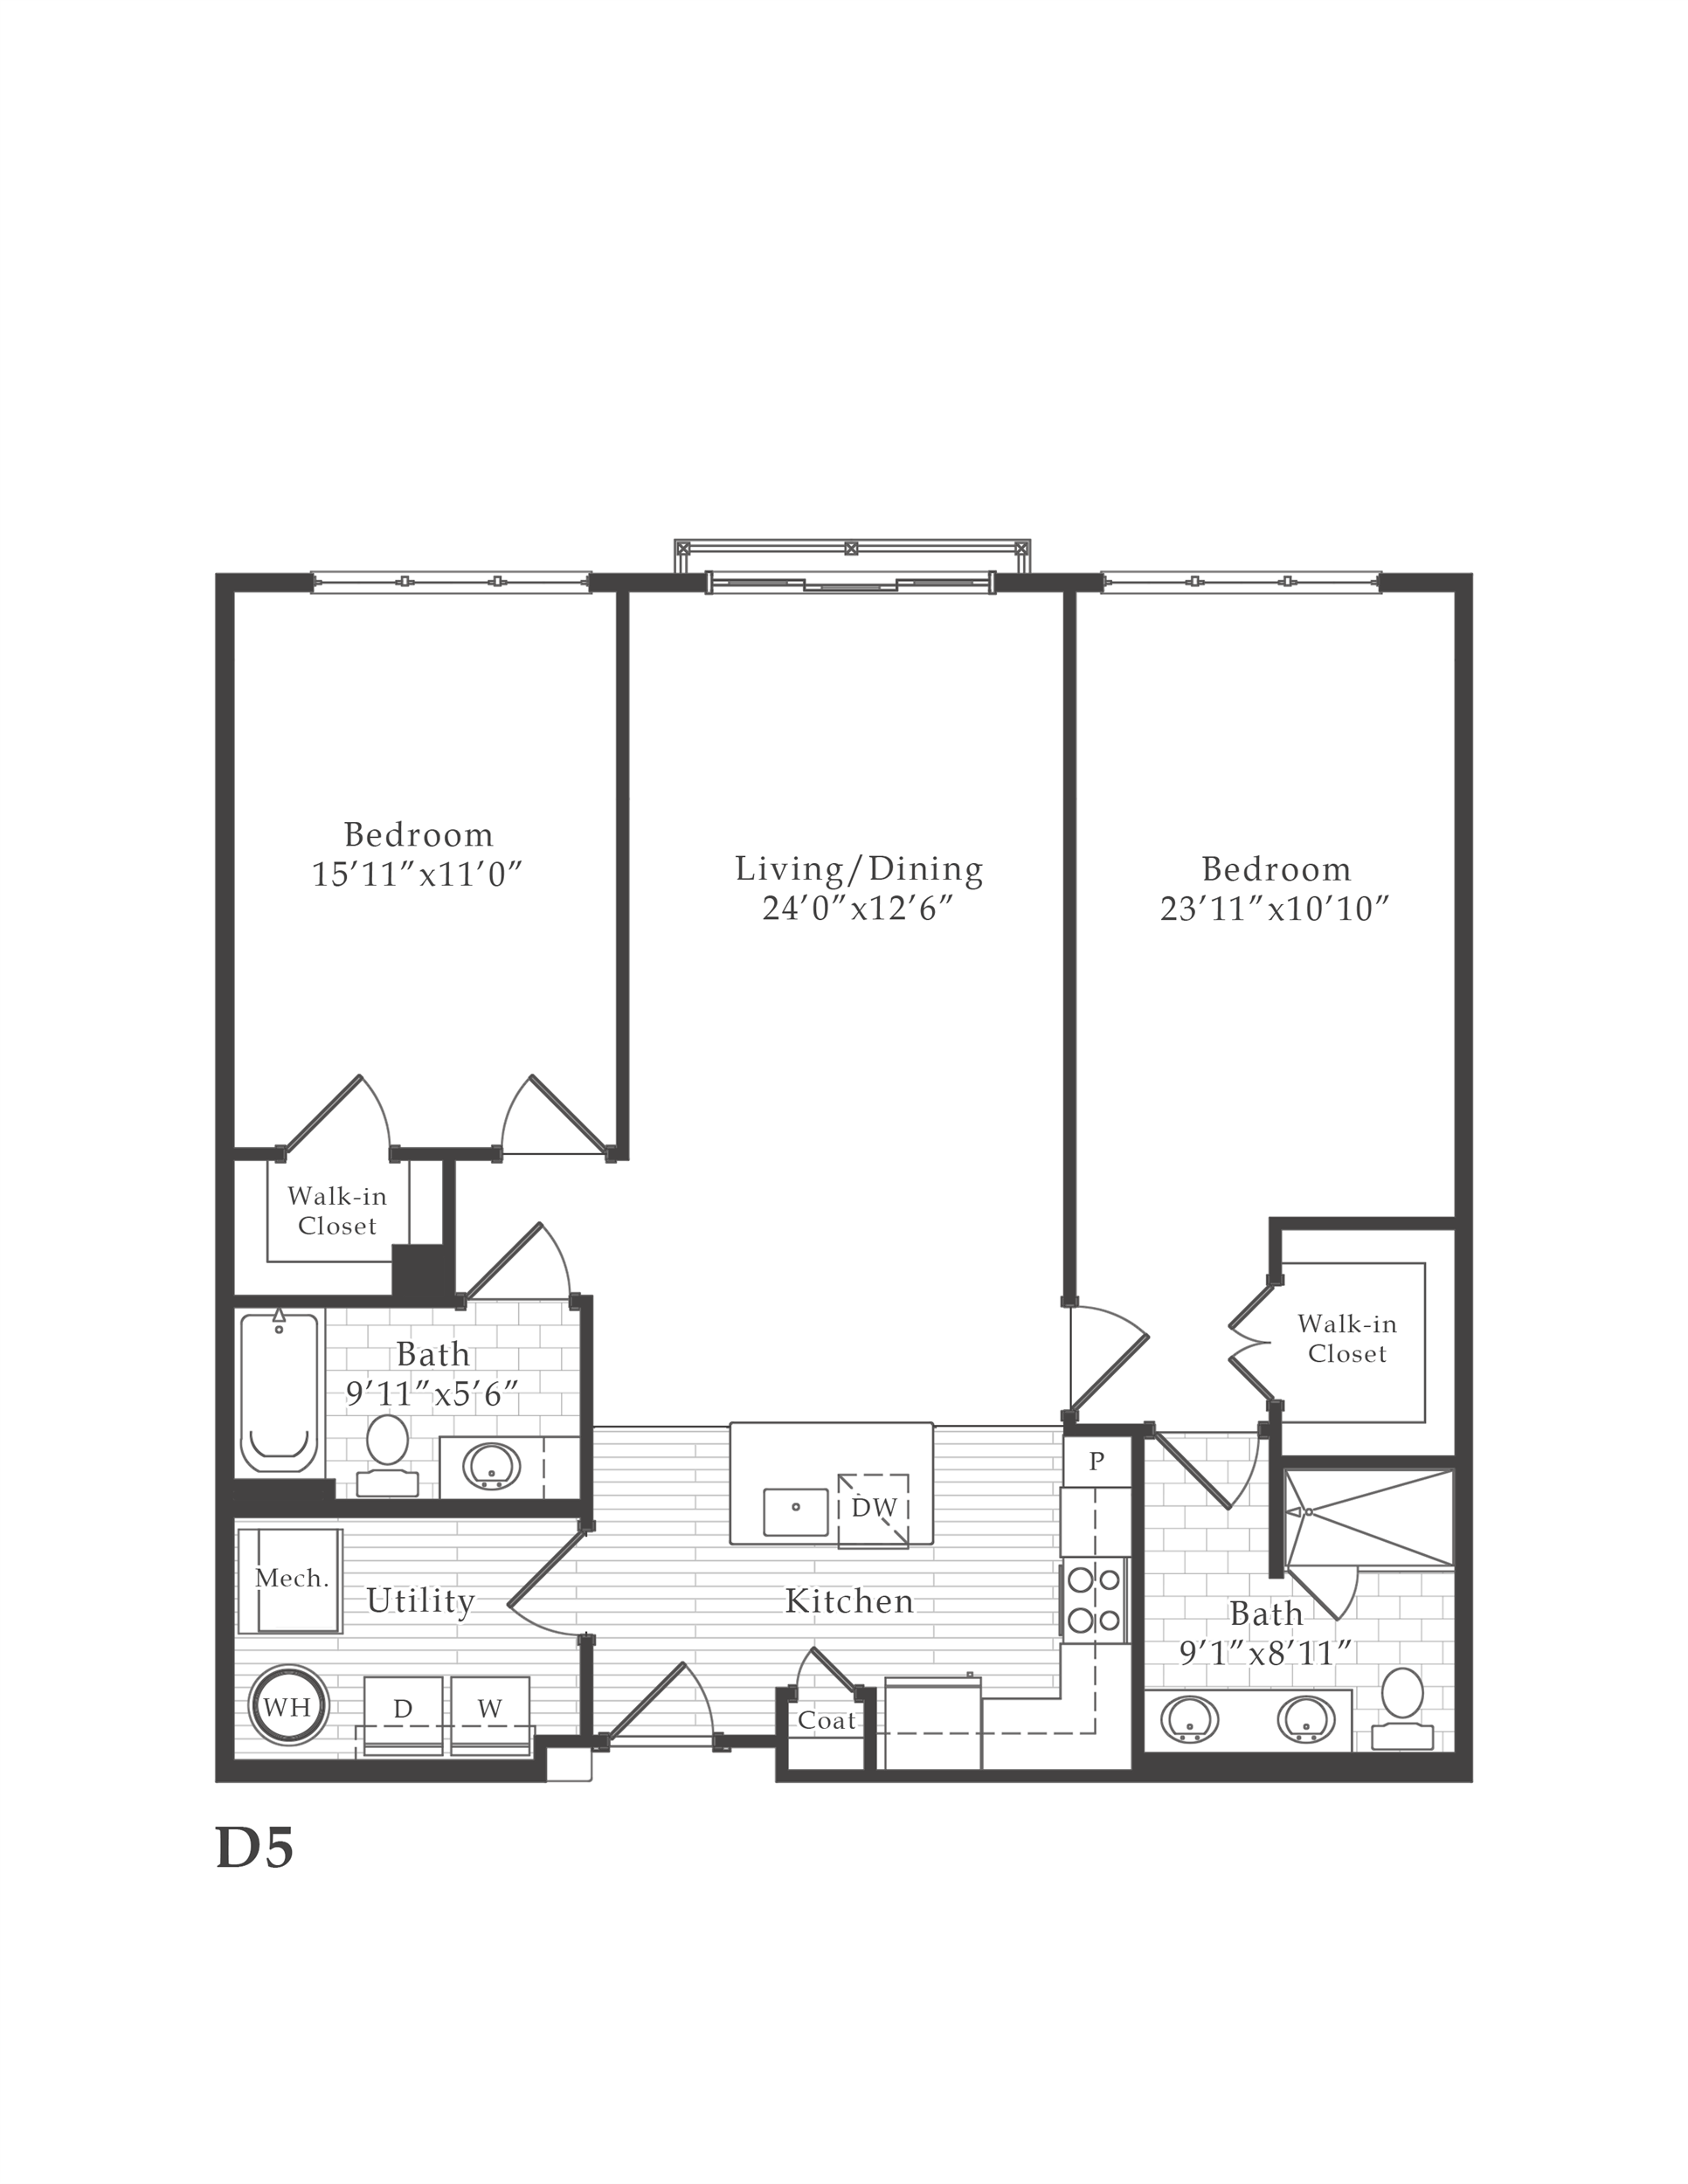 816bc07 md laurel thevine p0637686 vined51244 2 floorplan